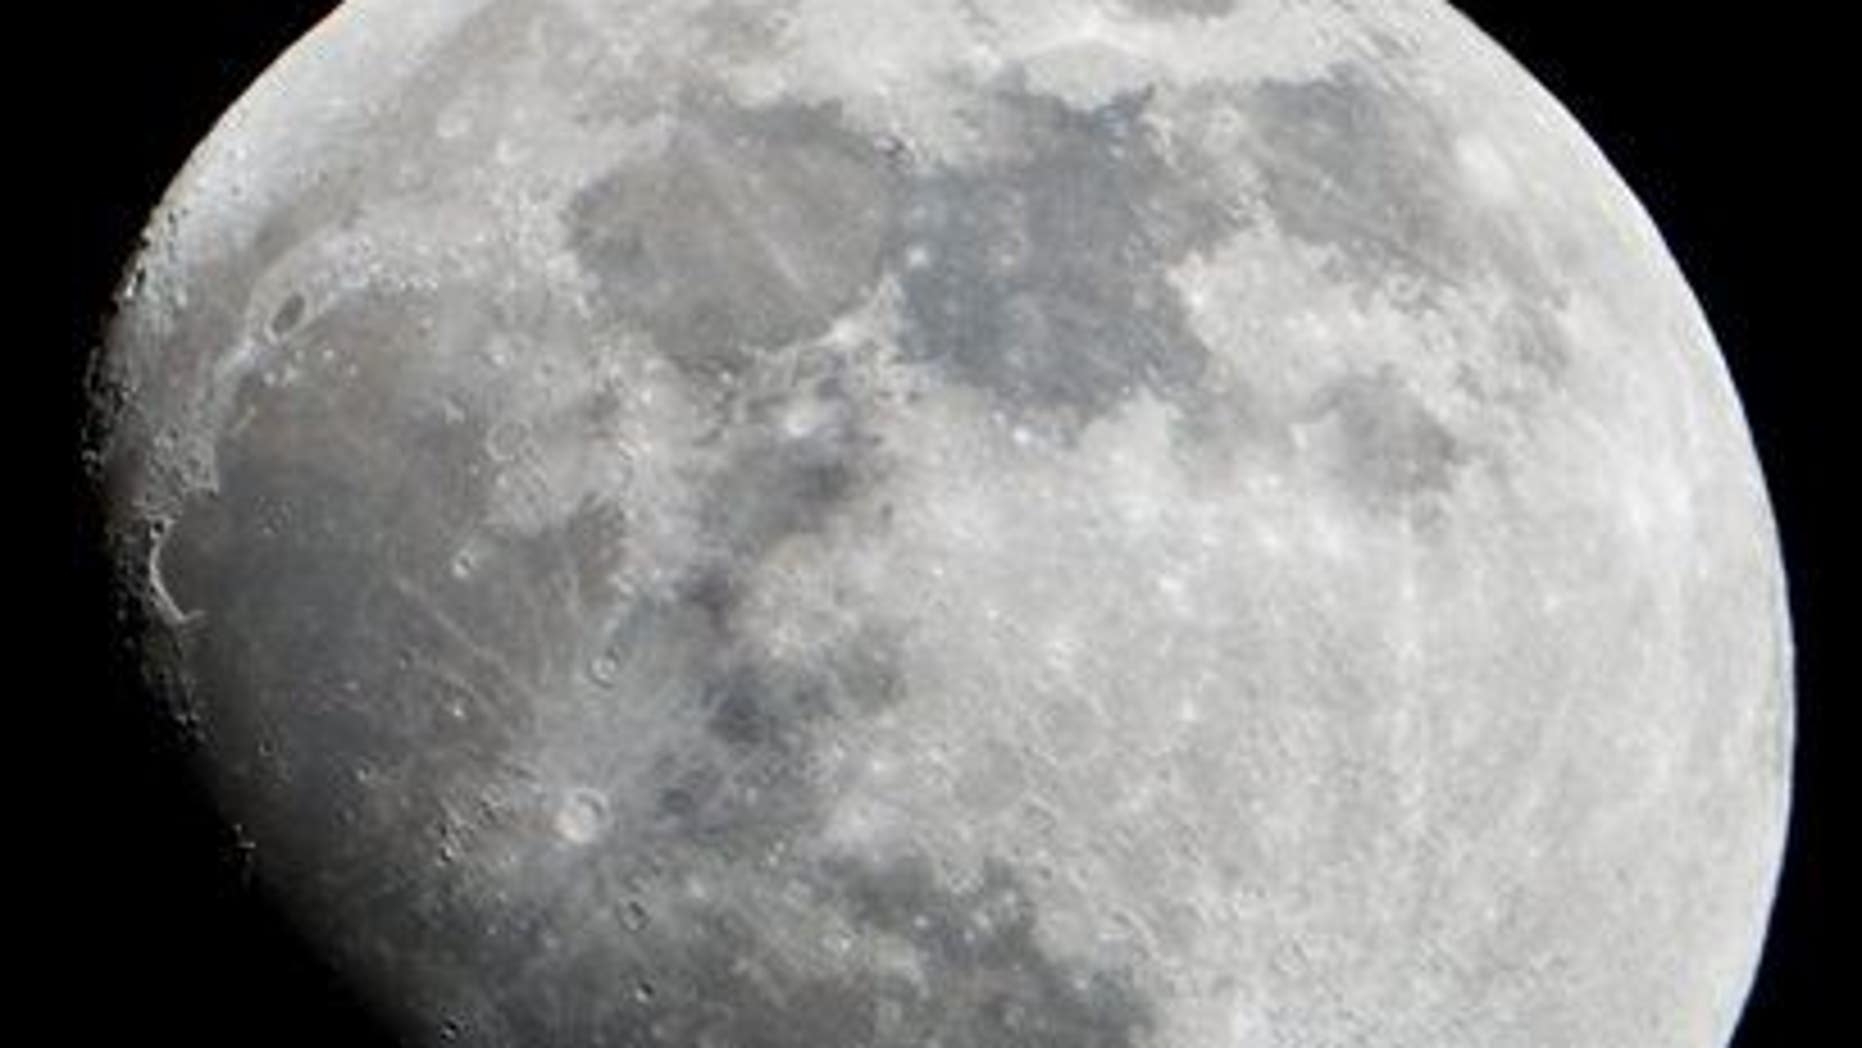 Lunar rocks bolster a long-held theory about how the moon was created.